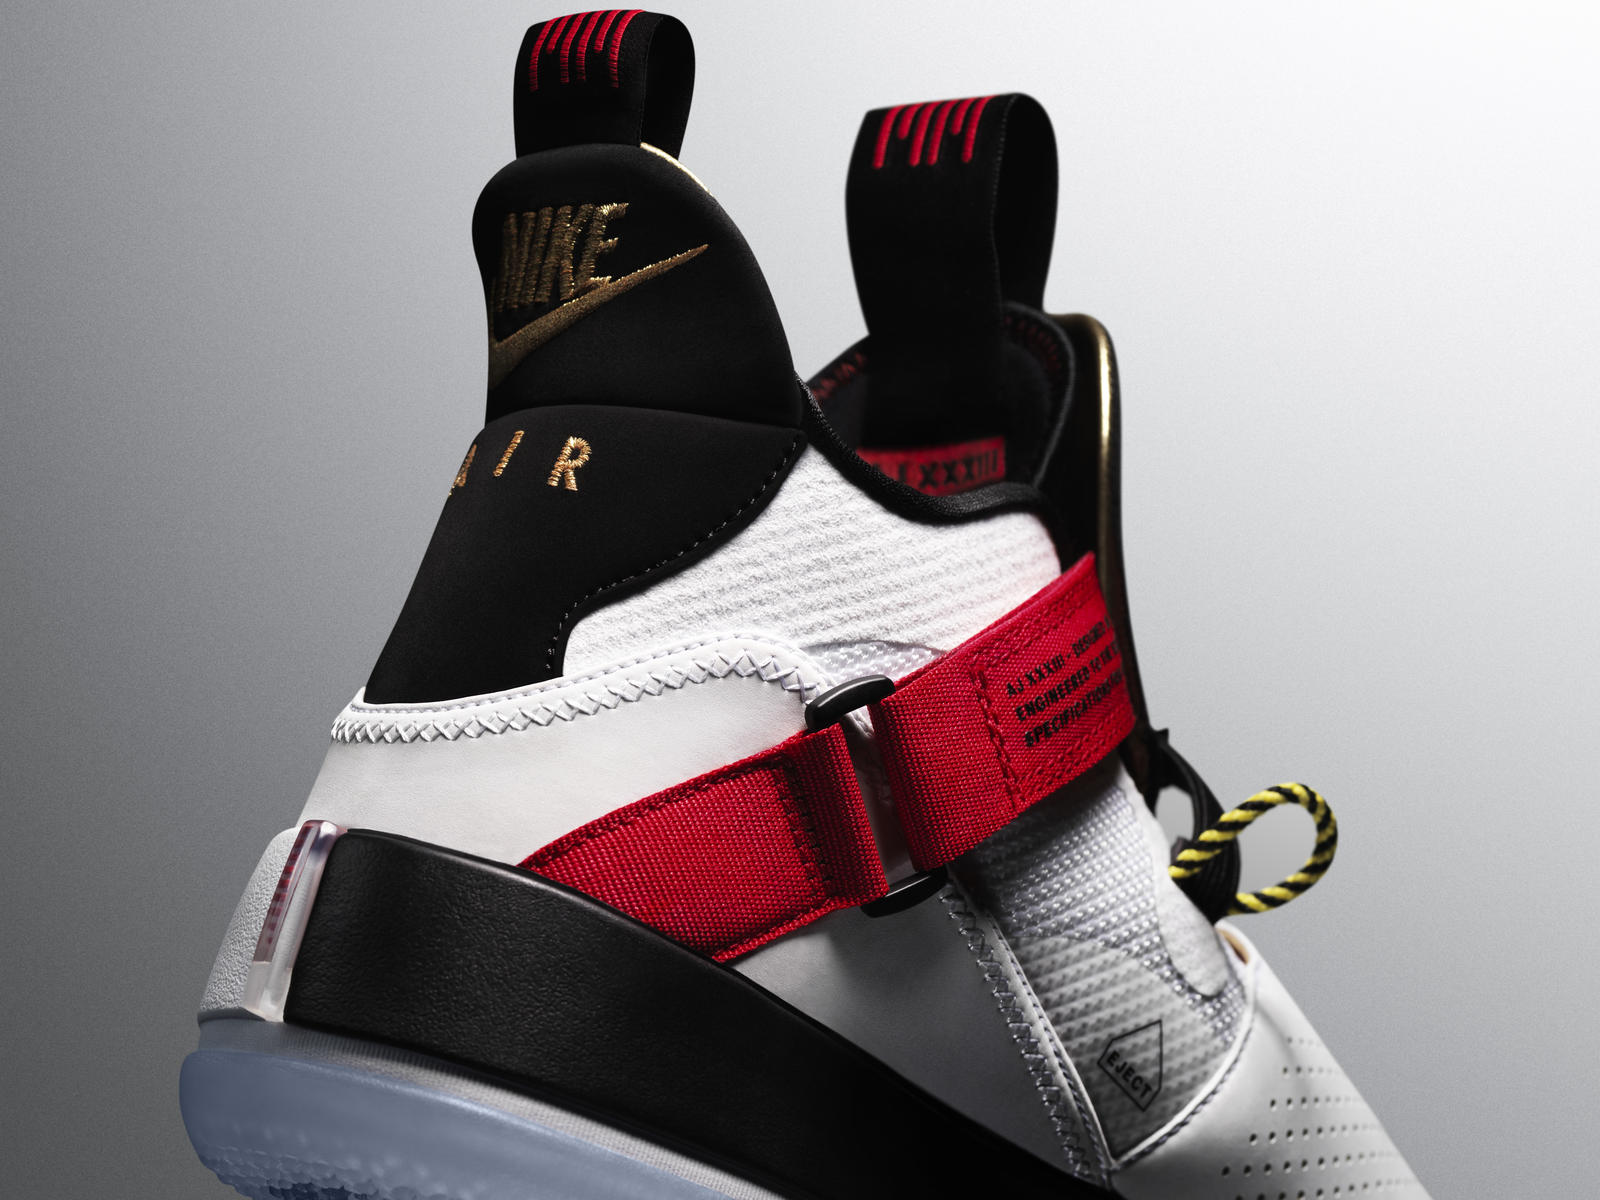 Fashion Jewelry Shoe Charms 1 Pair New Jordan 6 Black With Red Jumpman Replacement Lace Locks Fire Red For Improving Blood Circulation